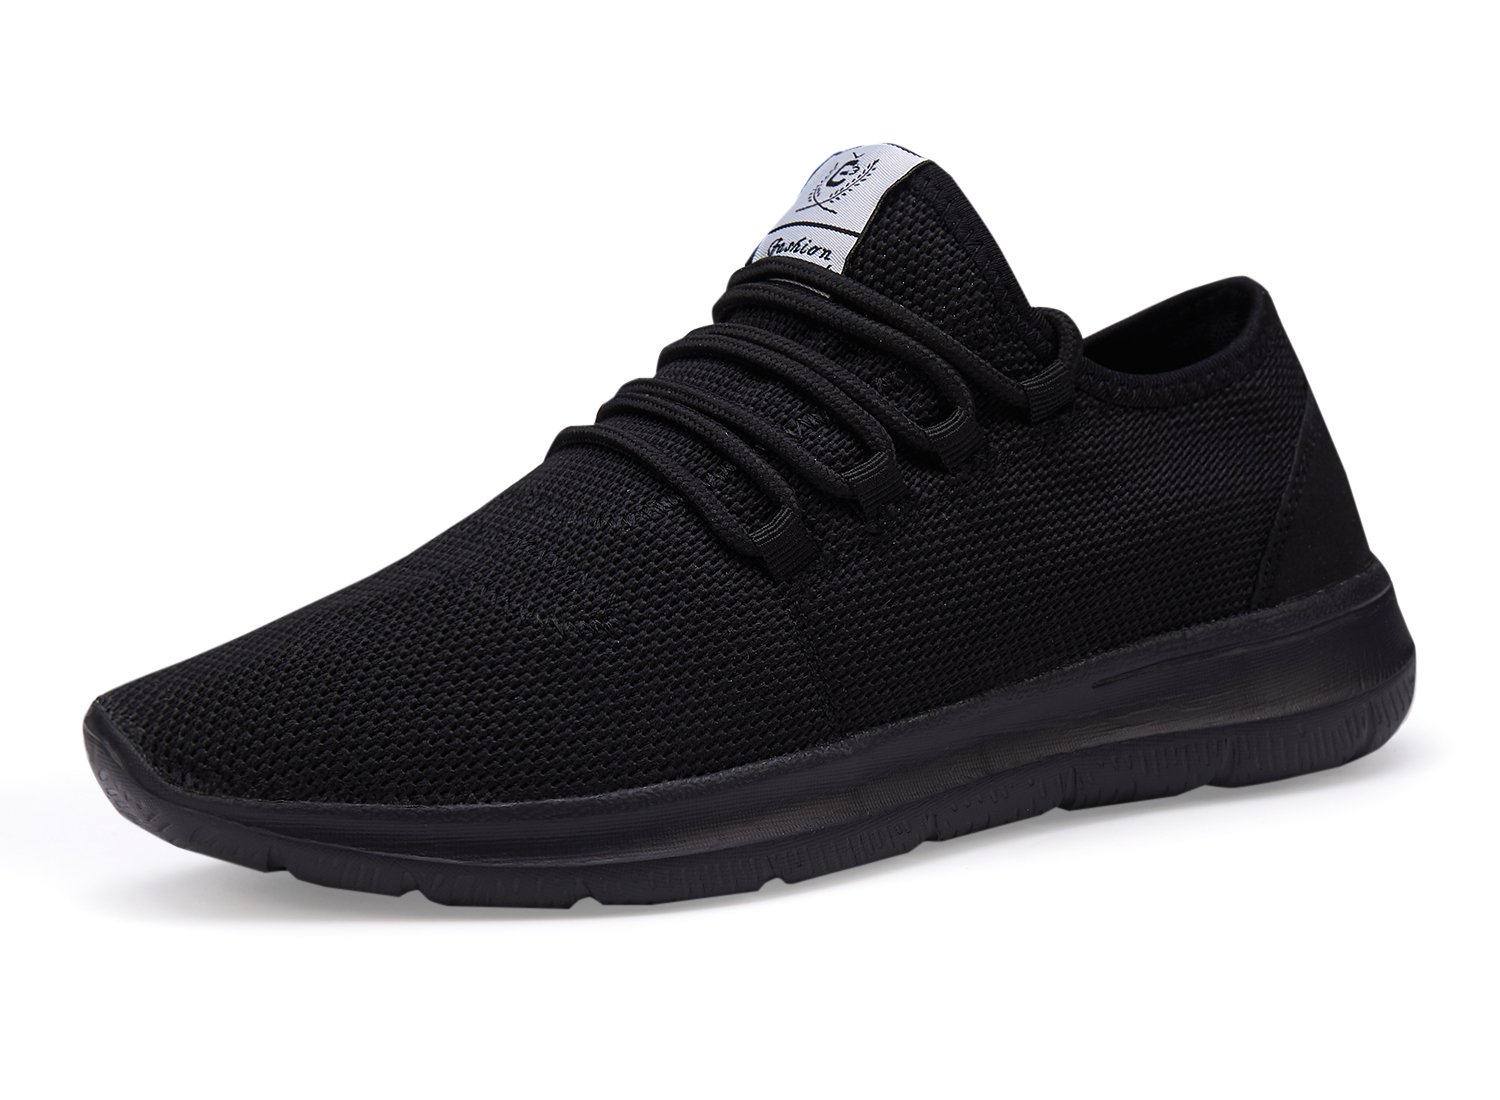 XUNMU Men's Walking Shoes Mesh Casual Athletic Shoes Running Shoes Lightweight Breathable Fashion Sneakers All Black 46 by XUNMU